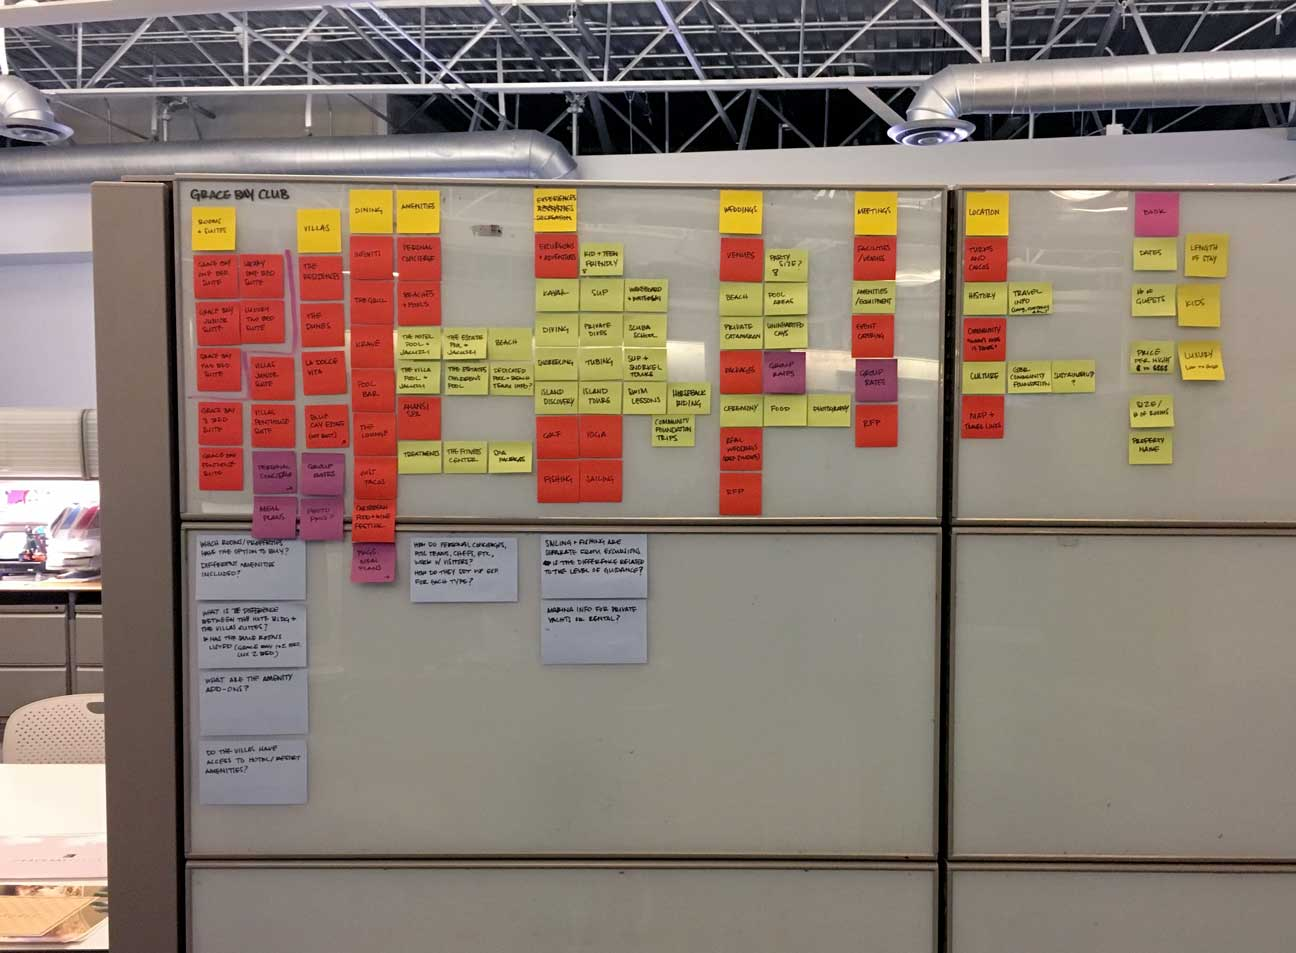 Color-coded Post-Its covering a whiteboard wall.